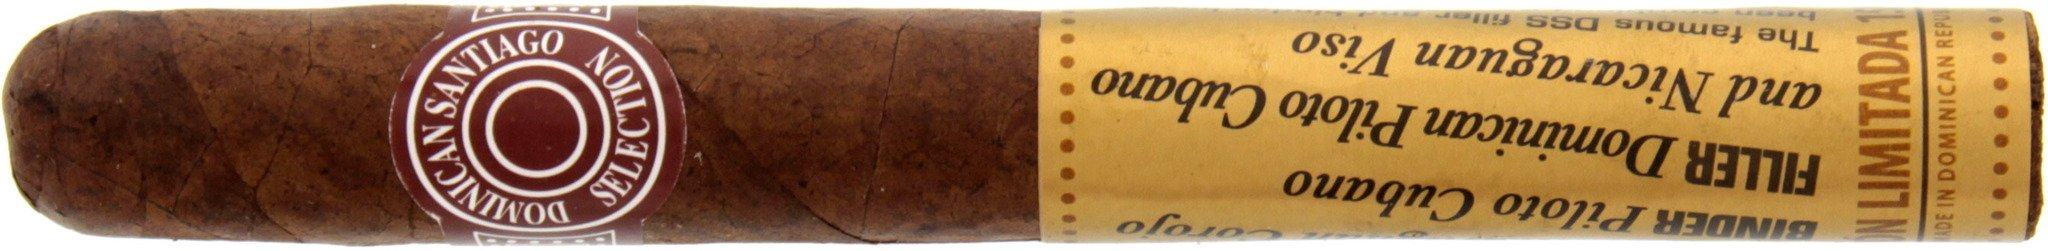 Dominican Santiago Selection (DSS) Limitada 1575 No. 2